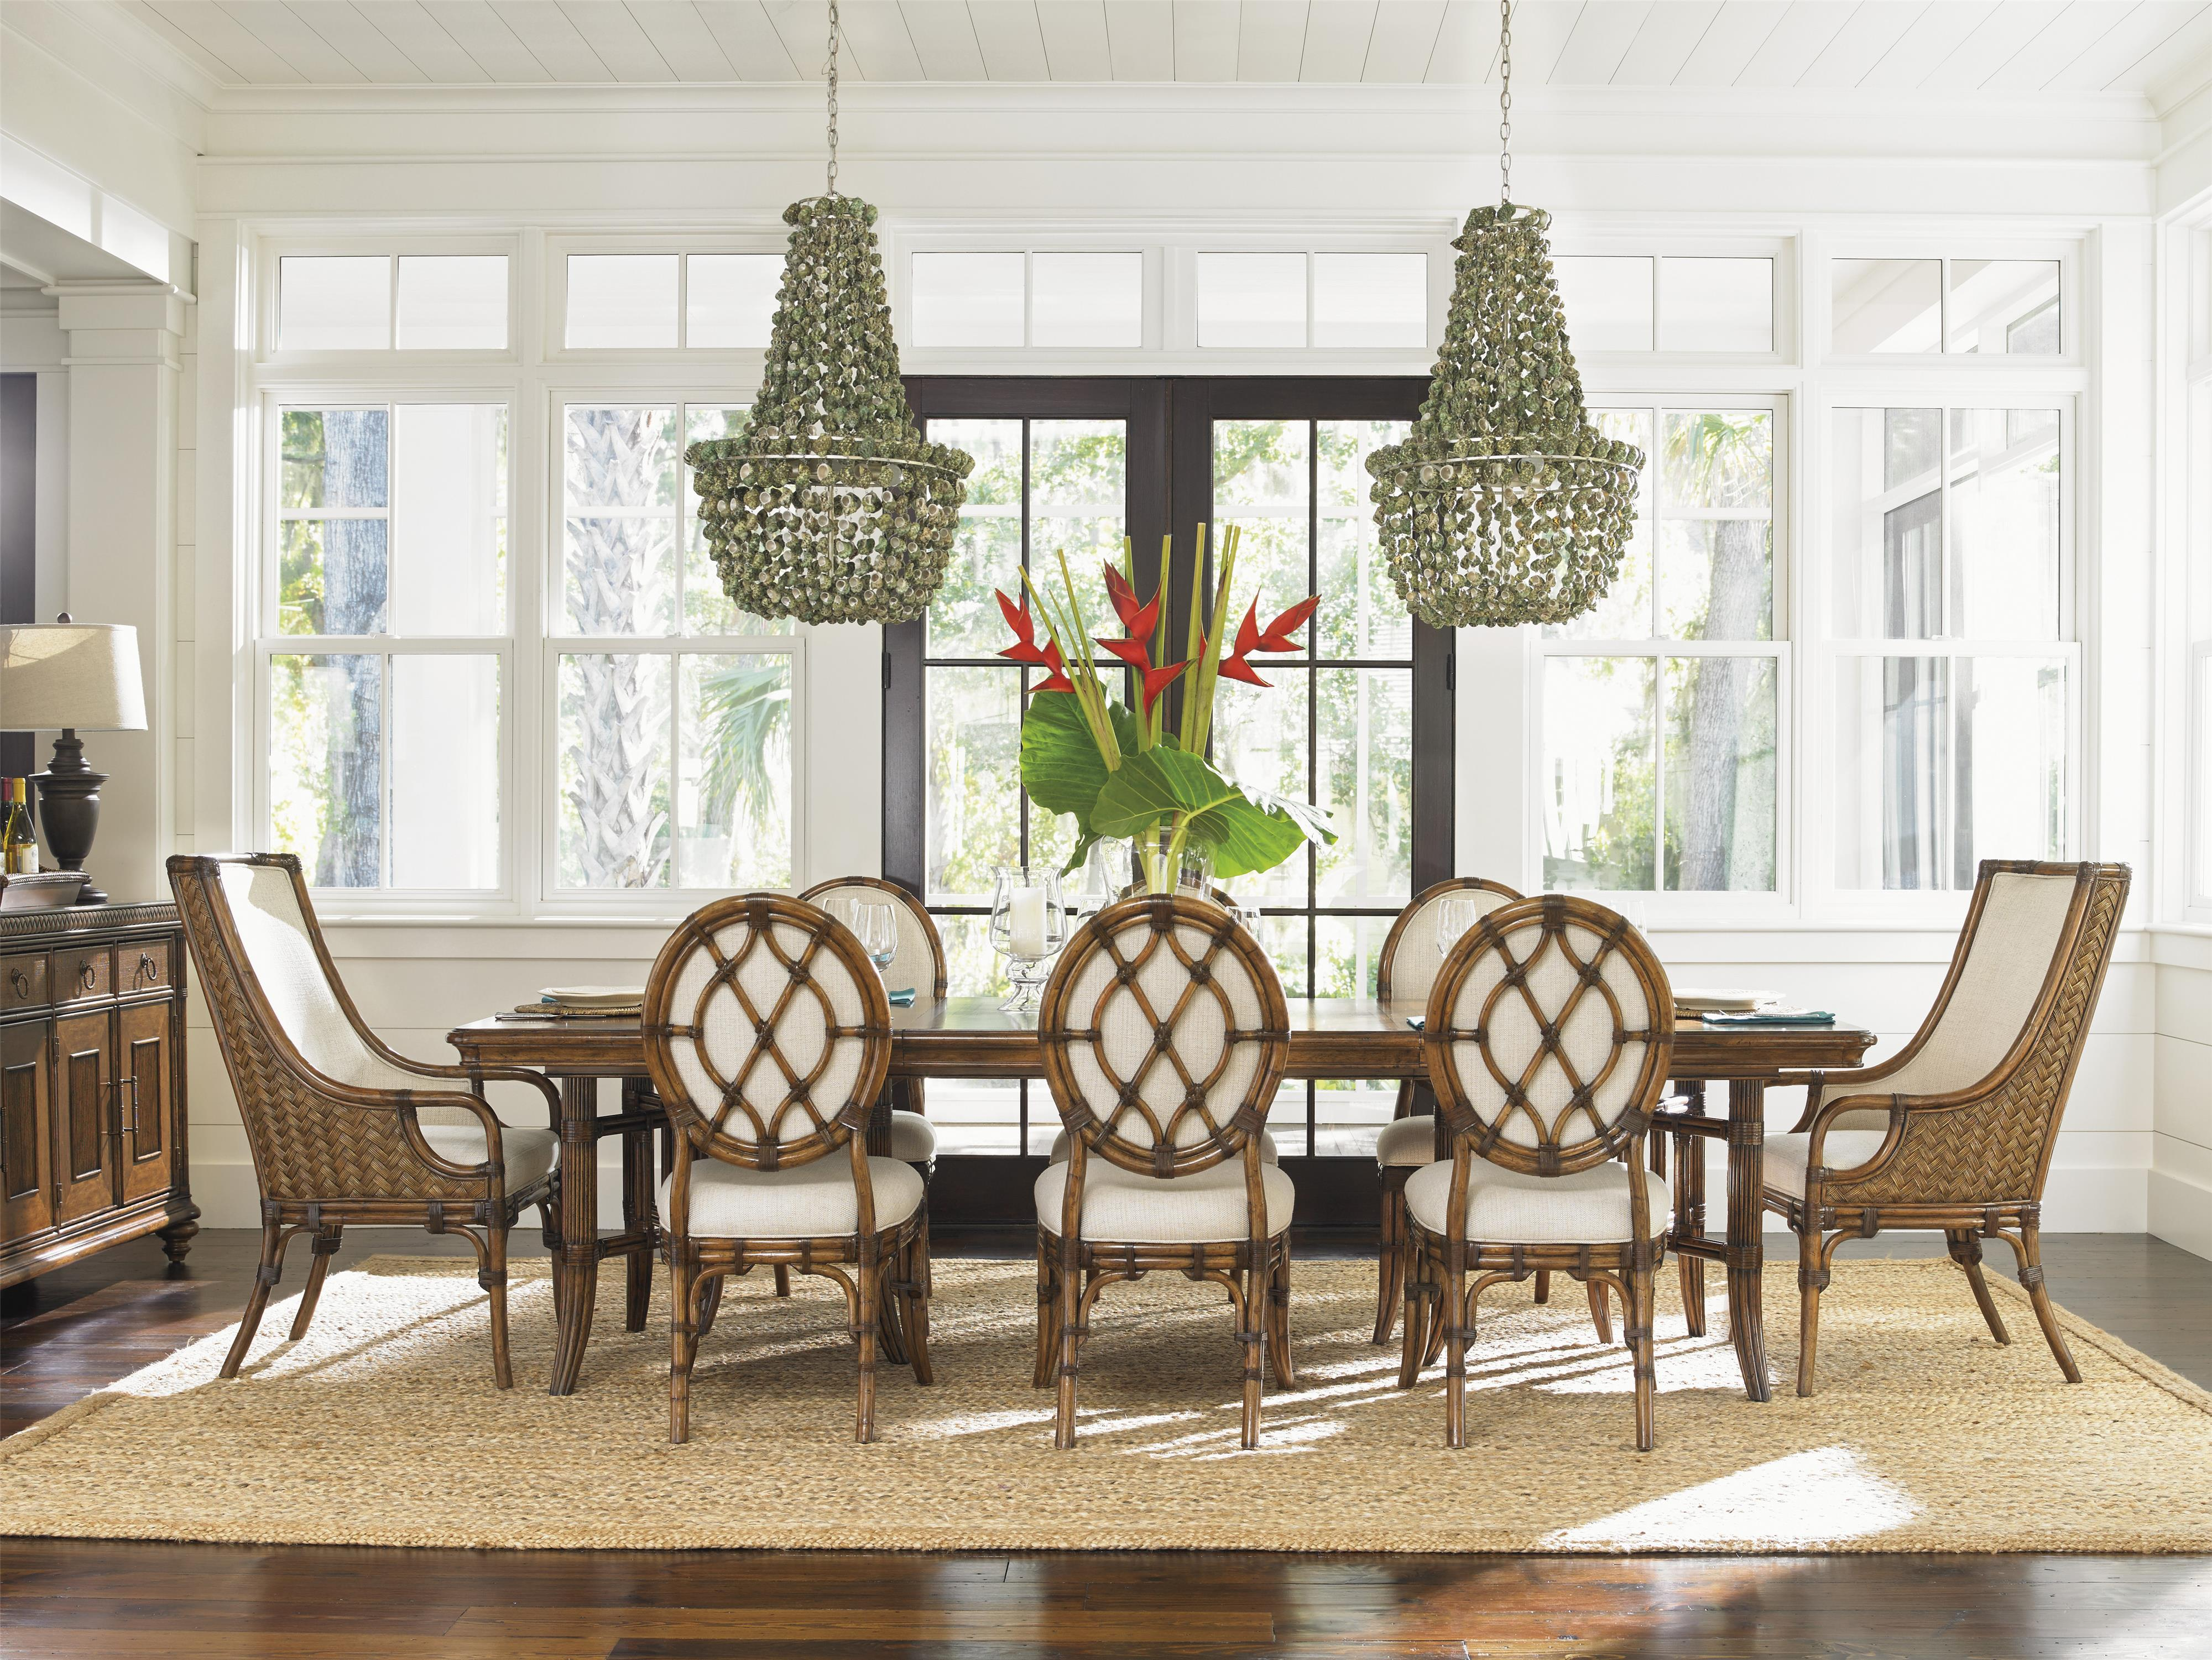 Bali Hai 9 Piece Dining Set by Tommy Bahama Home at Baer's Furniture